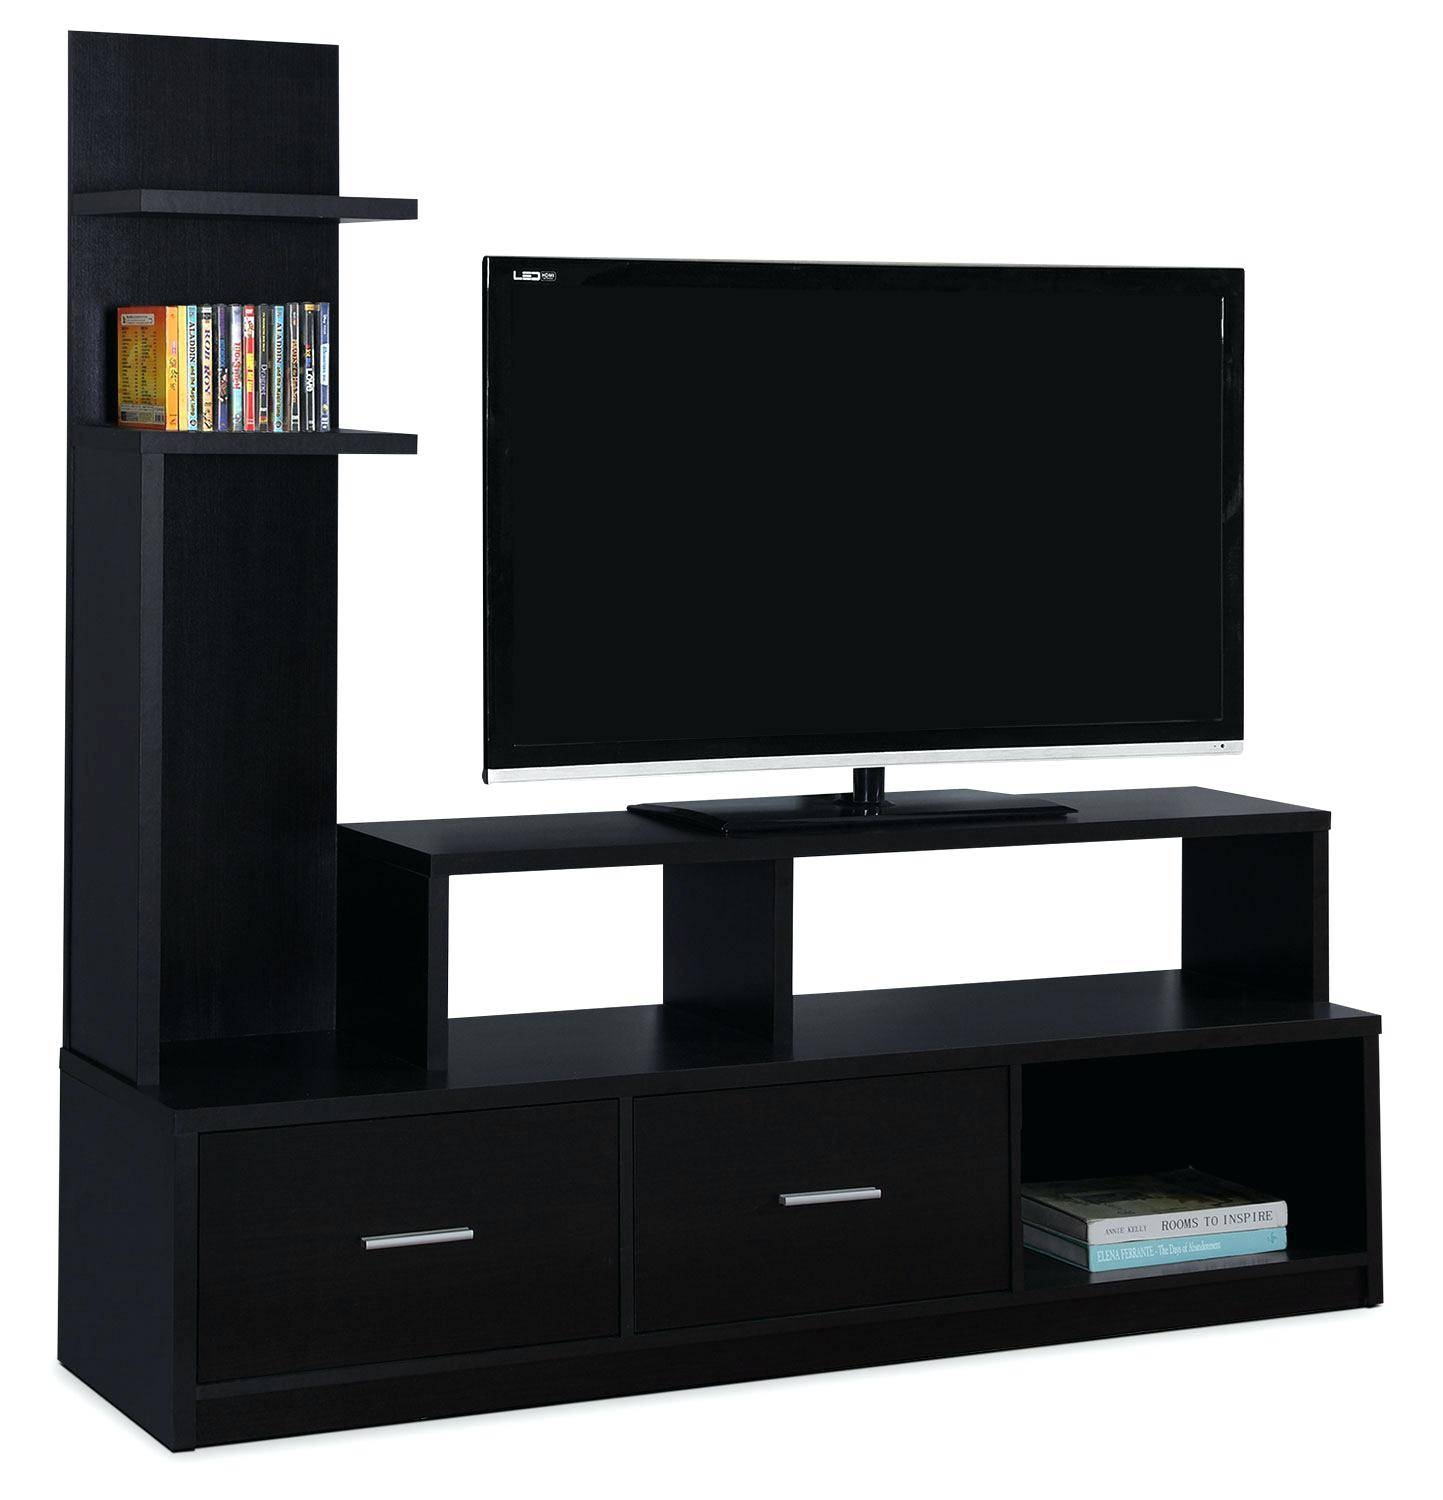 Tv Stand : Hokku Designs 48 Tv Stand Wall Hanging Tv Stand Hokku pertaining to Hokku Tv Stands (Image 7 of 15)